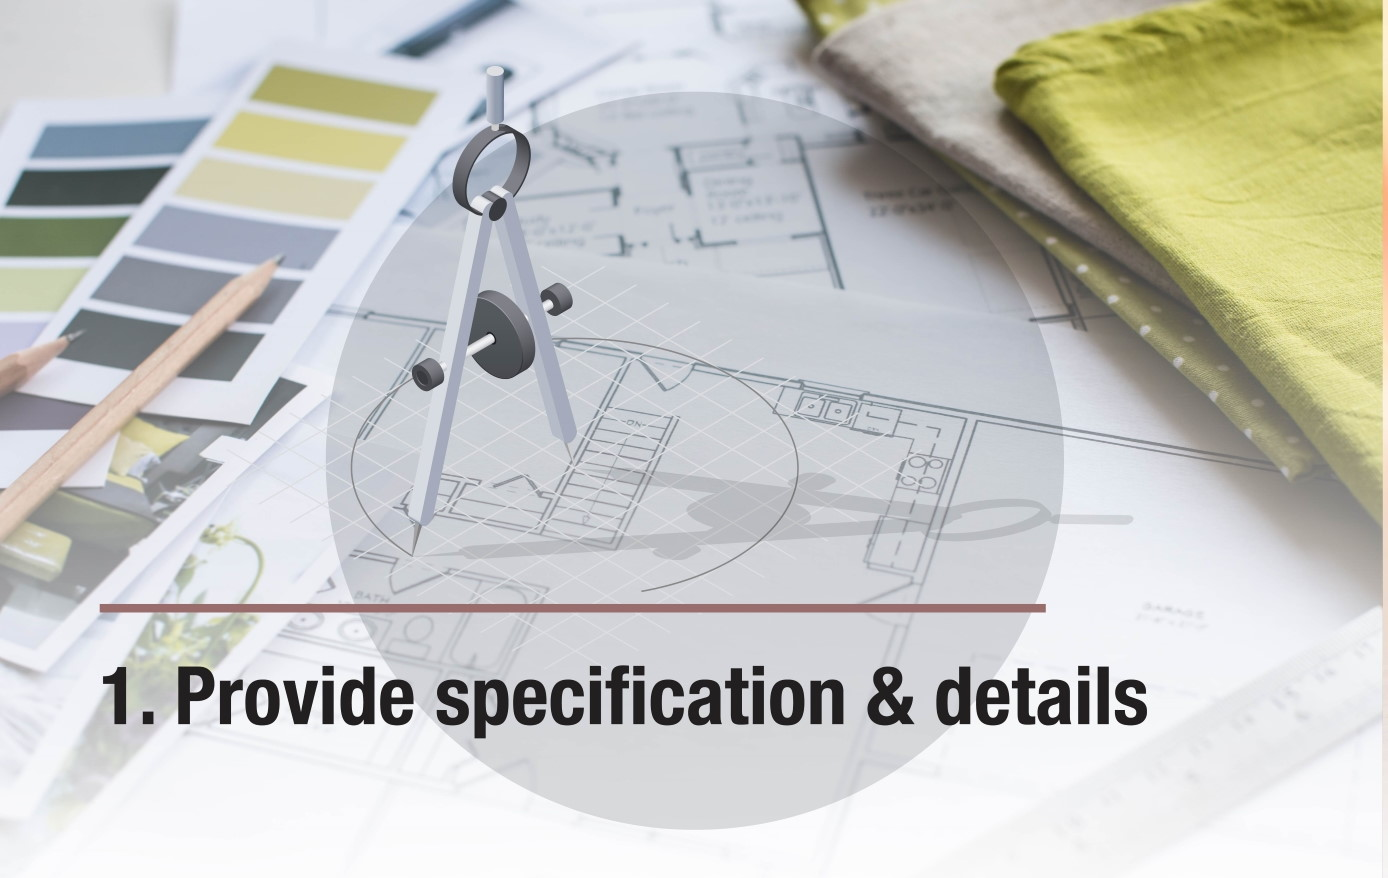 Provide specification & detail